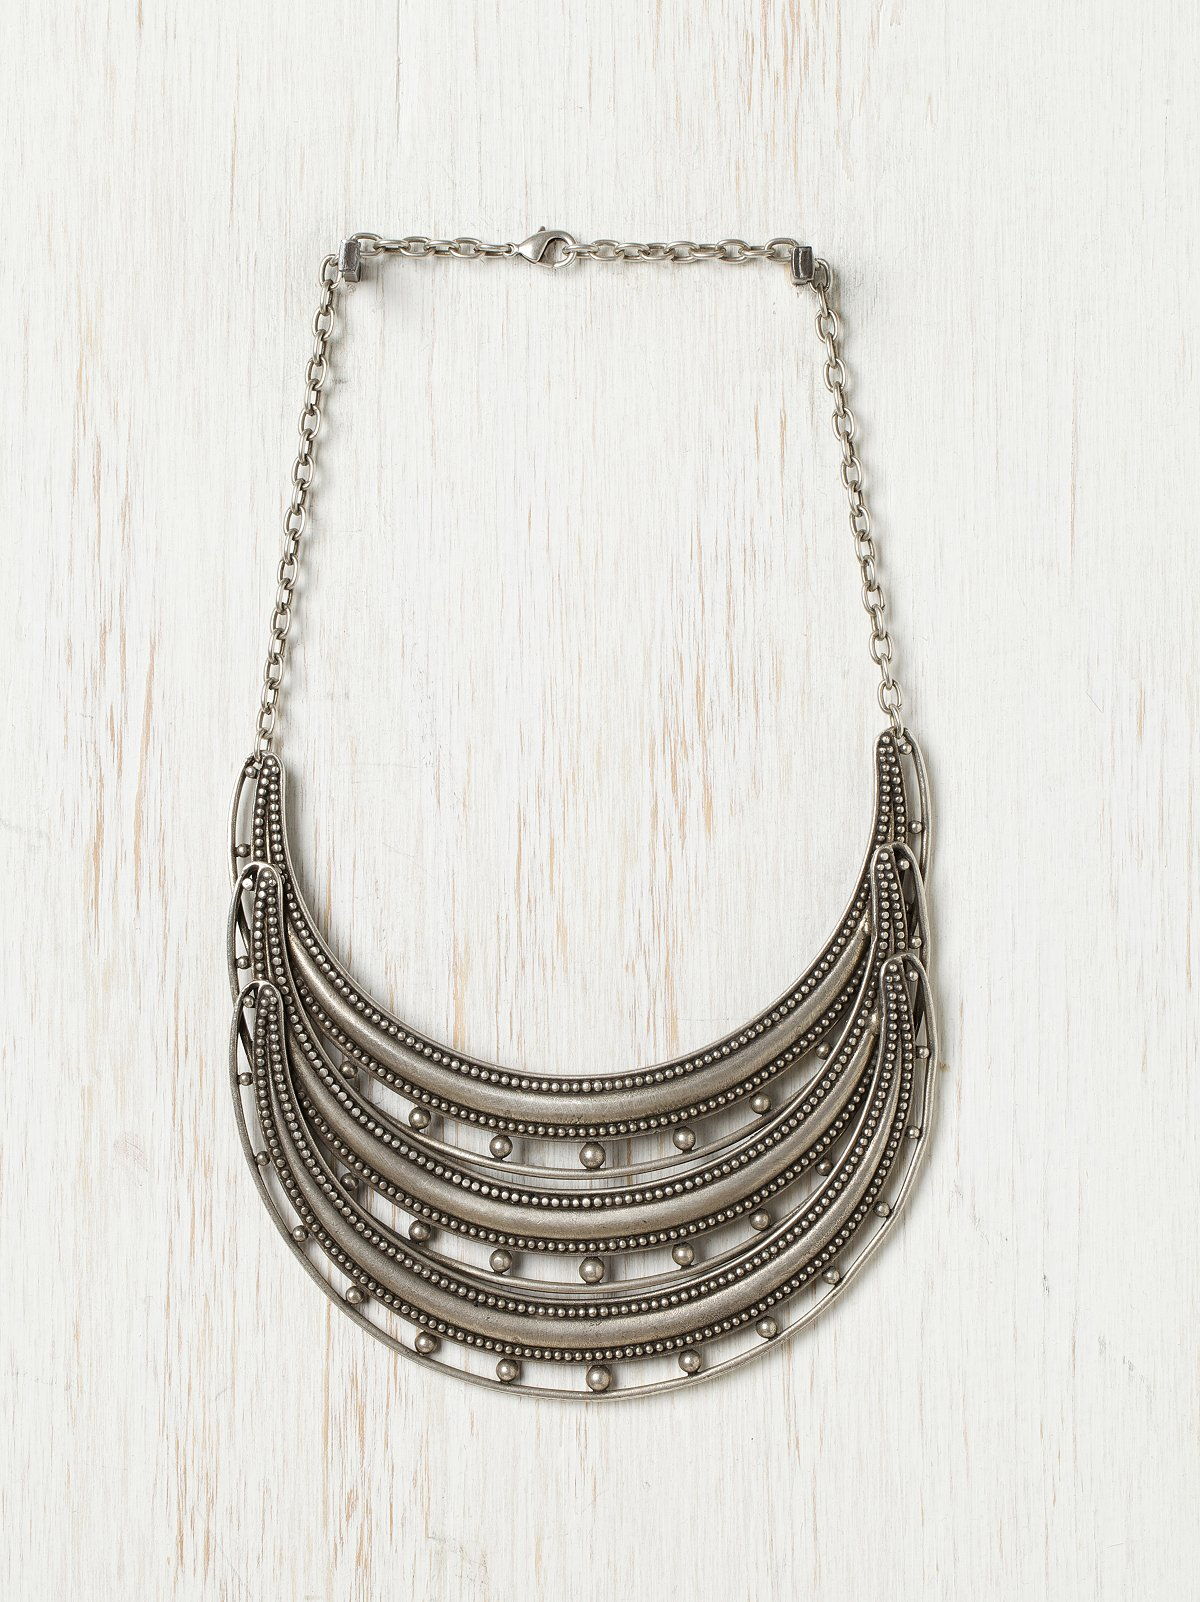 Jennifer Elizabeth Athena Necklace